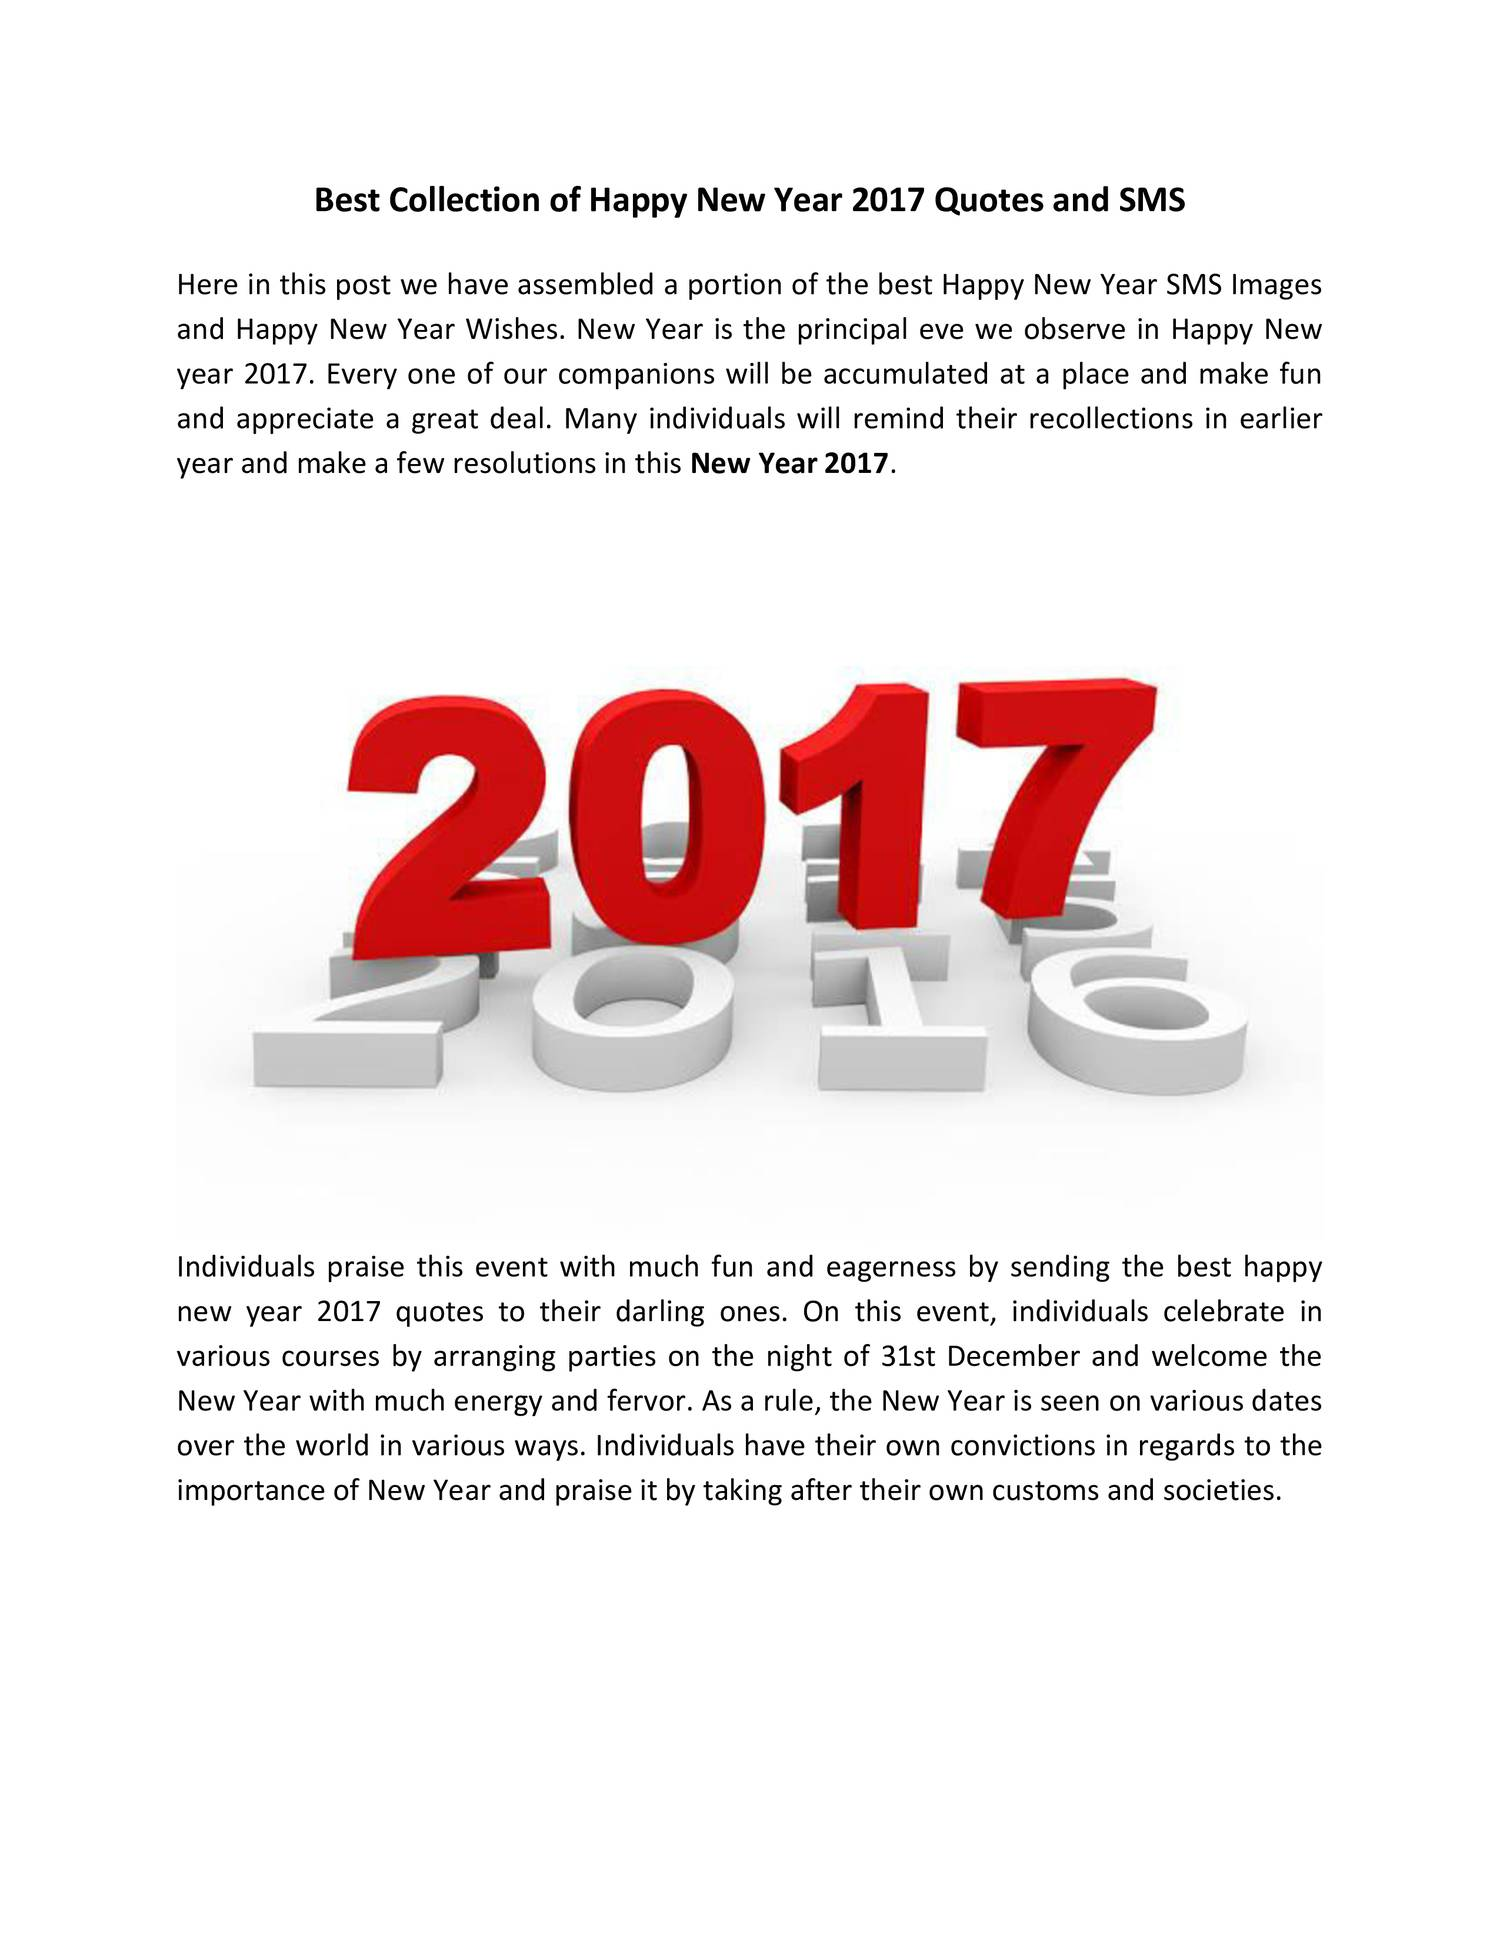 Best Collection of Happy New Year 2017 Quotes and SMS.pdf - DocDroid